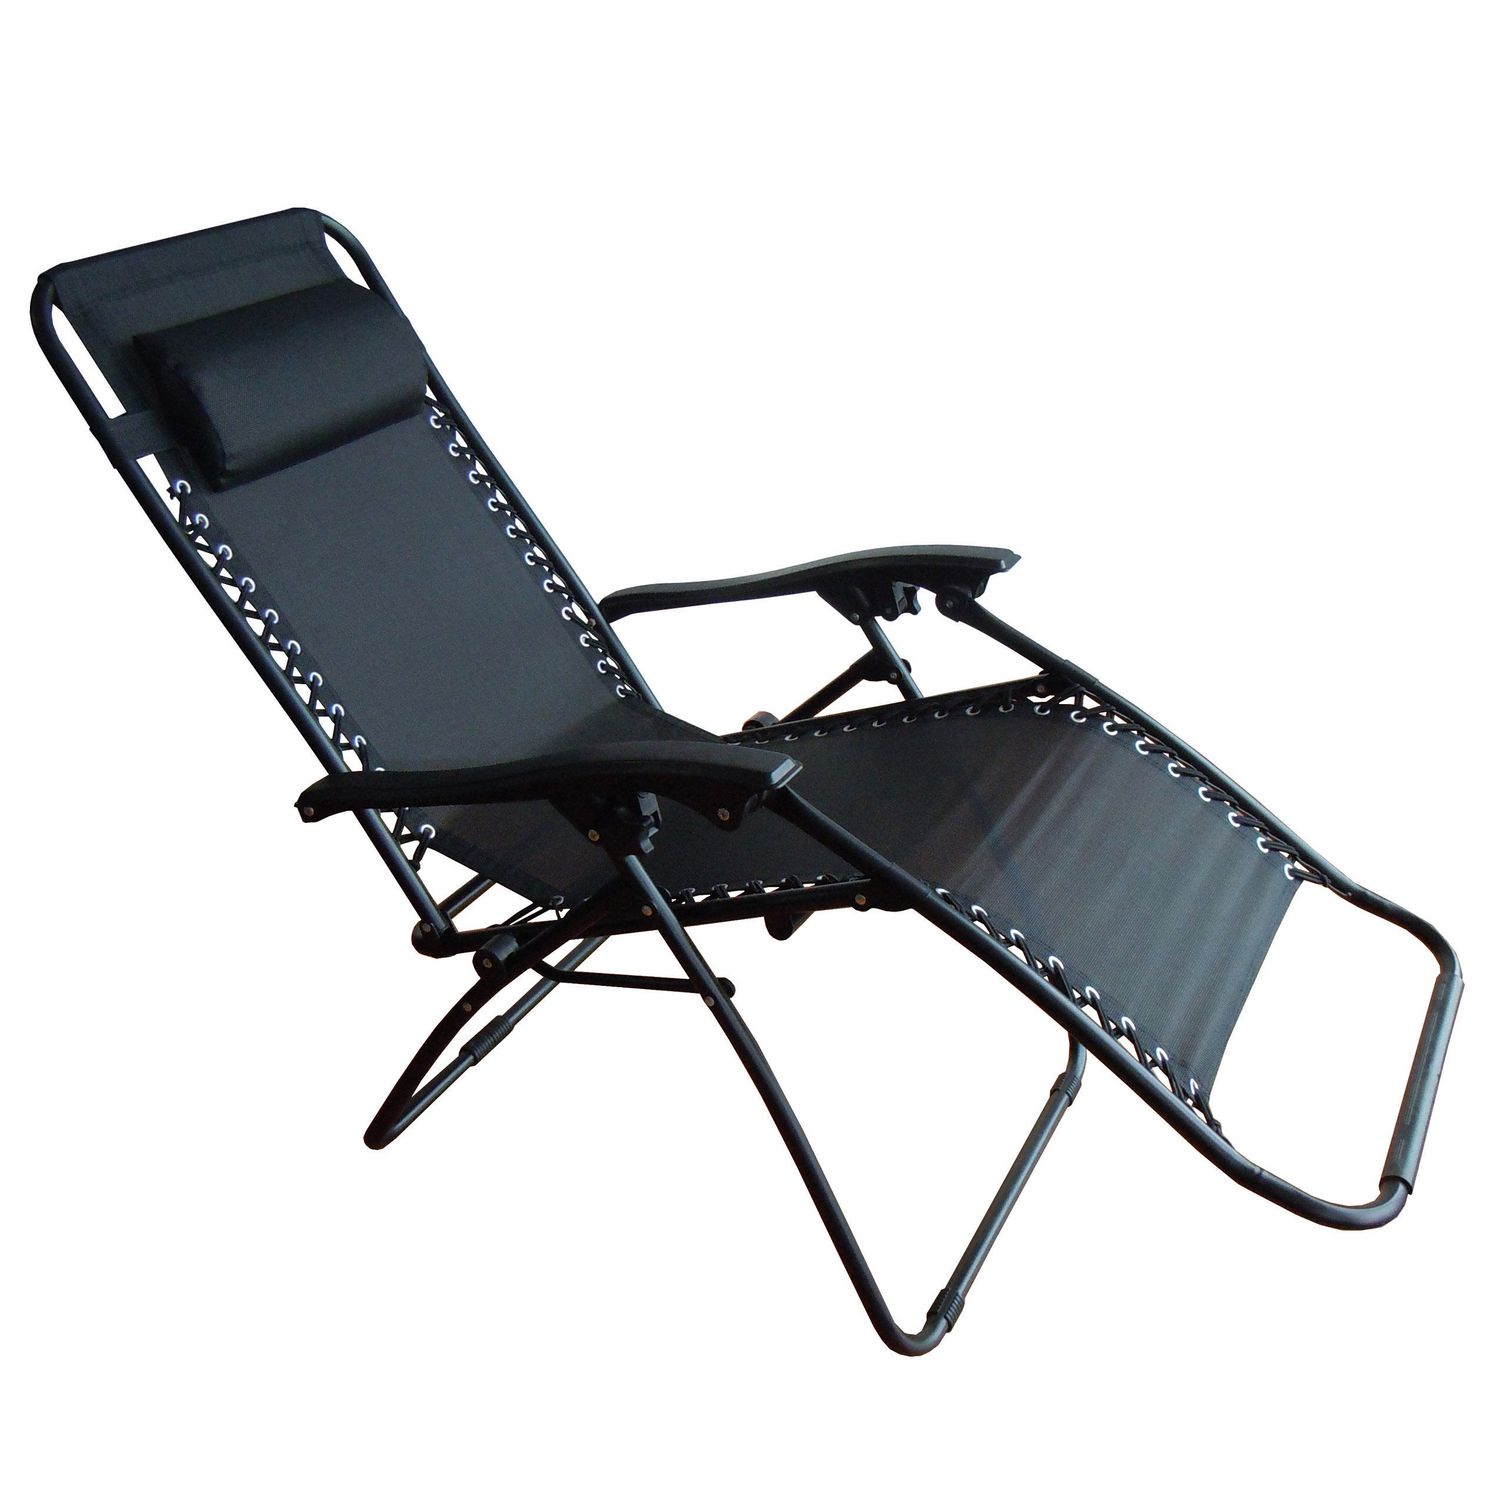 Boppy Lounger Cover | Timber Ridge Camp Lounger | Orbital Lounger